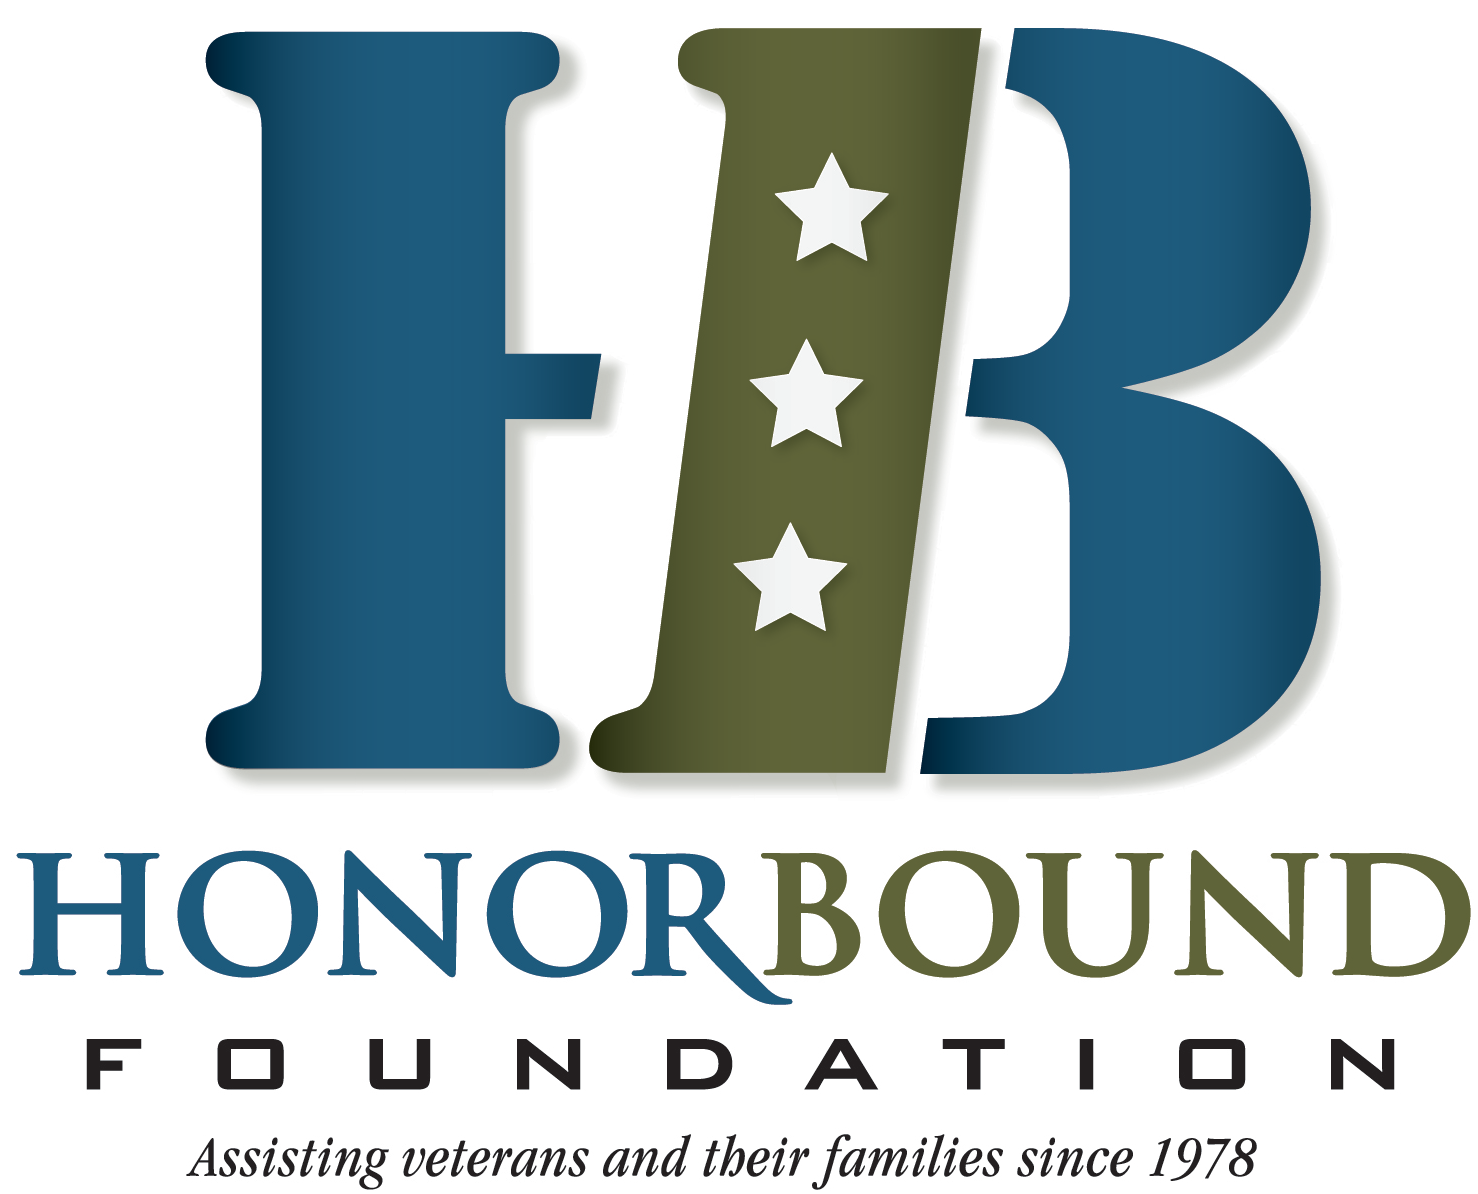 Nevada Car Donations - HonorBound Foundation - DonatecarUSA.com